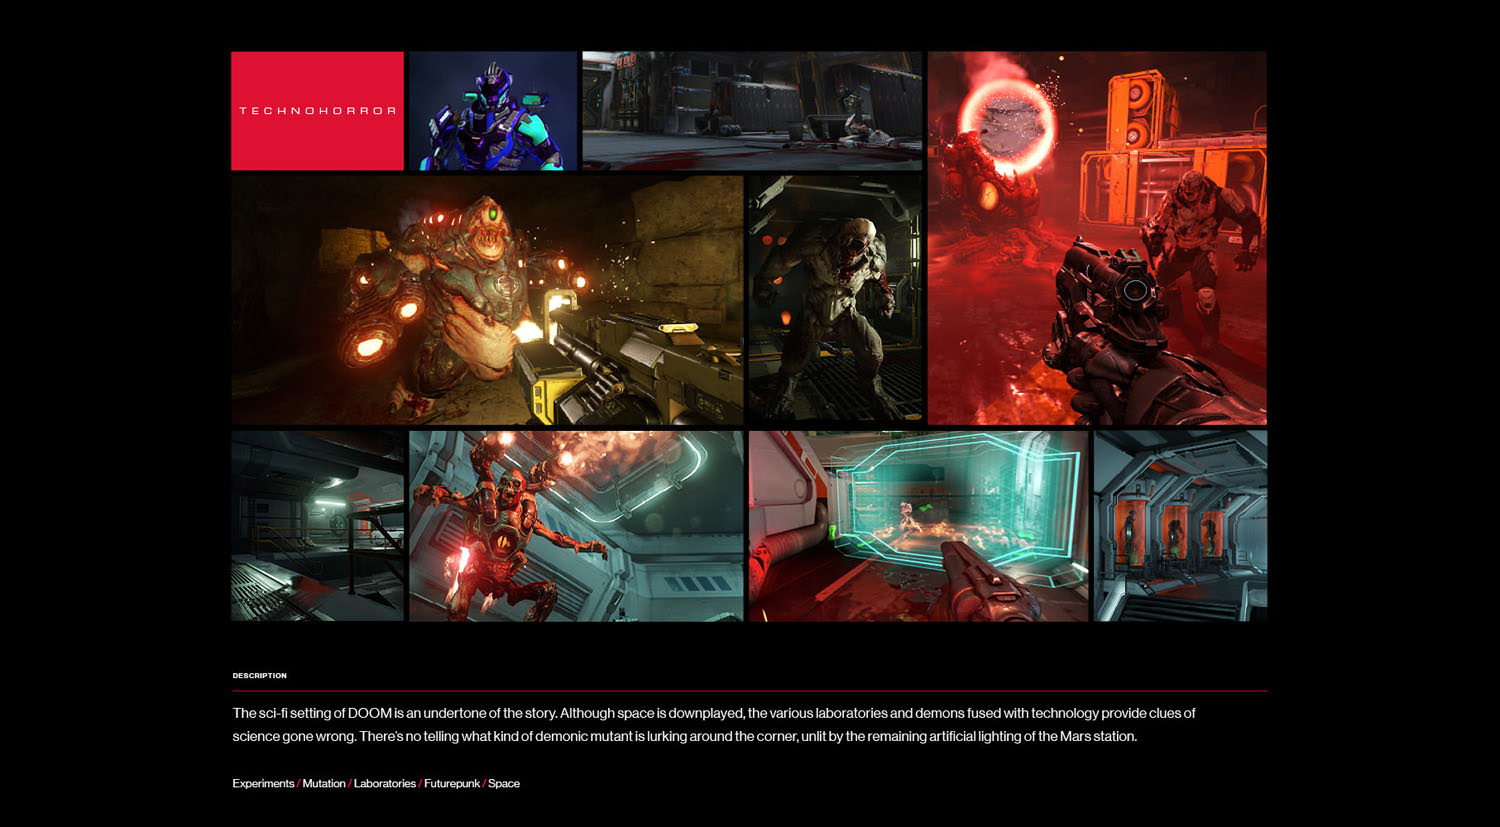 DOOM - Bringing the chaotic DOOM experience to a new generation